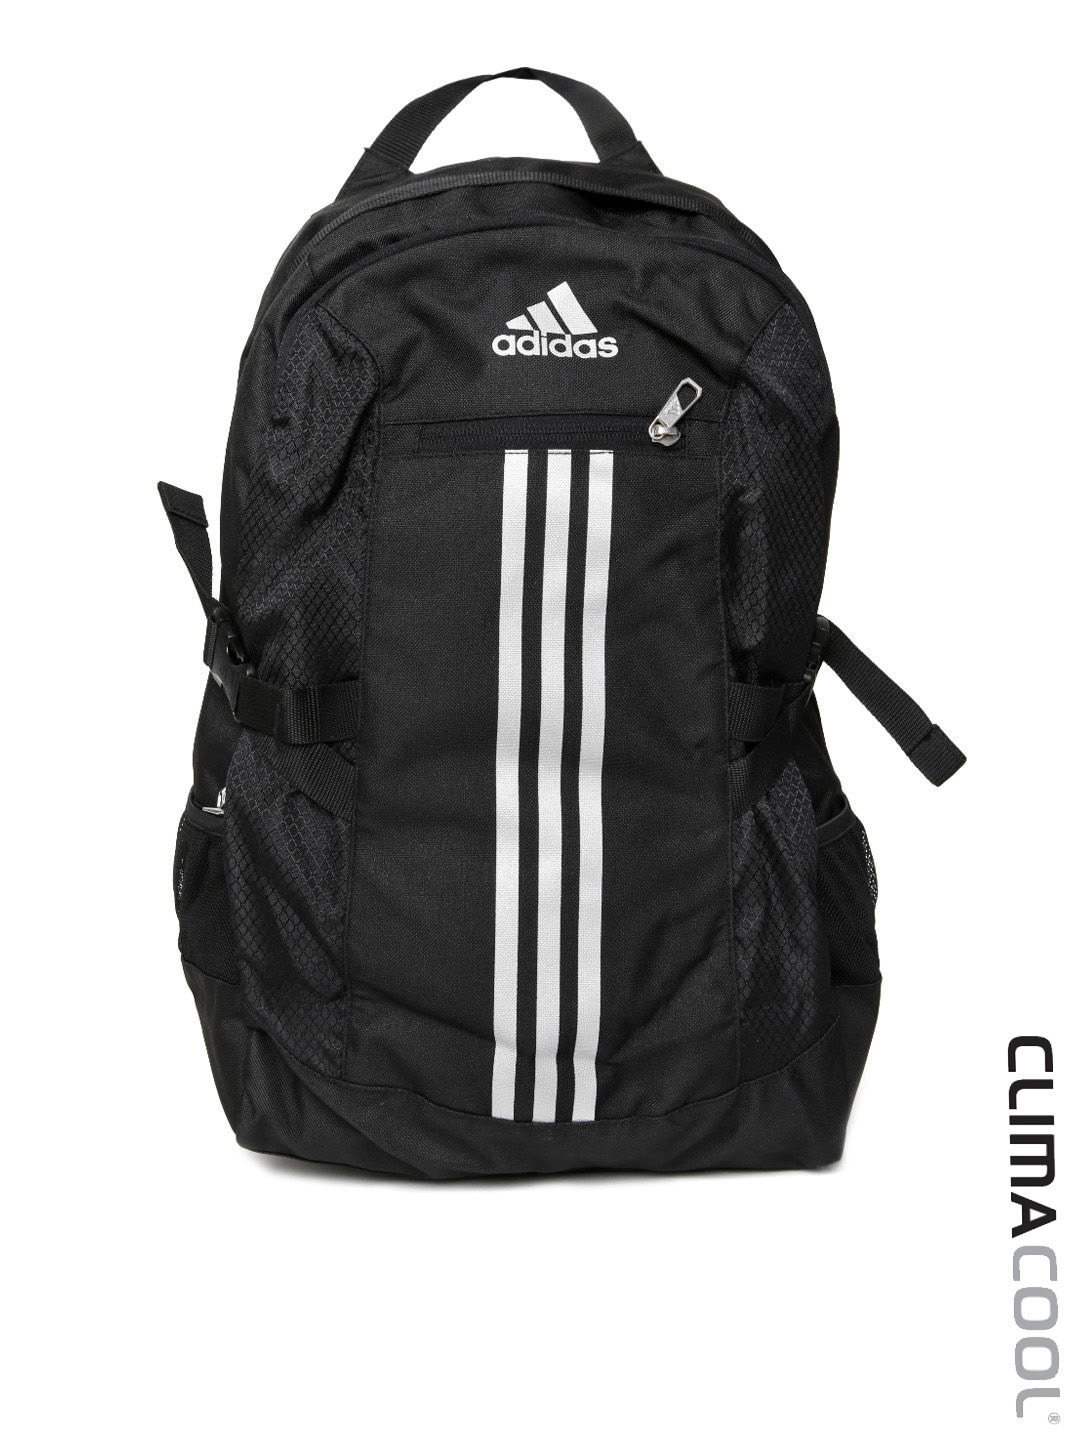 9a9d885017 Adidas Asics Backpacks Tights - Buy Adidas Asics Backpacks Tights online in  India